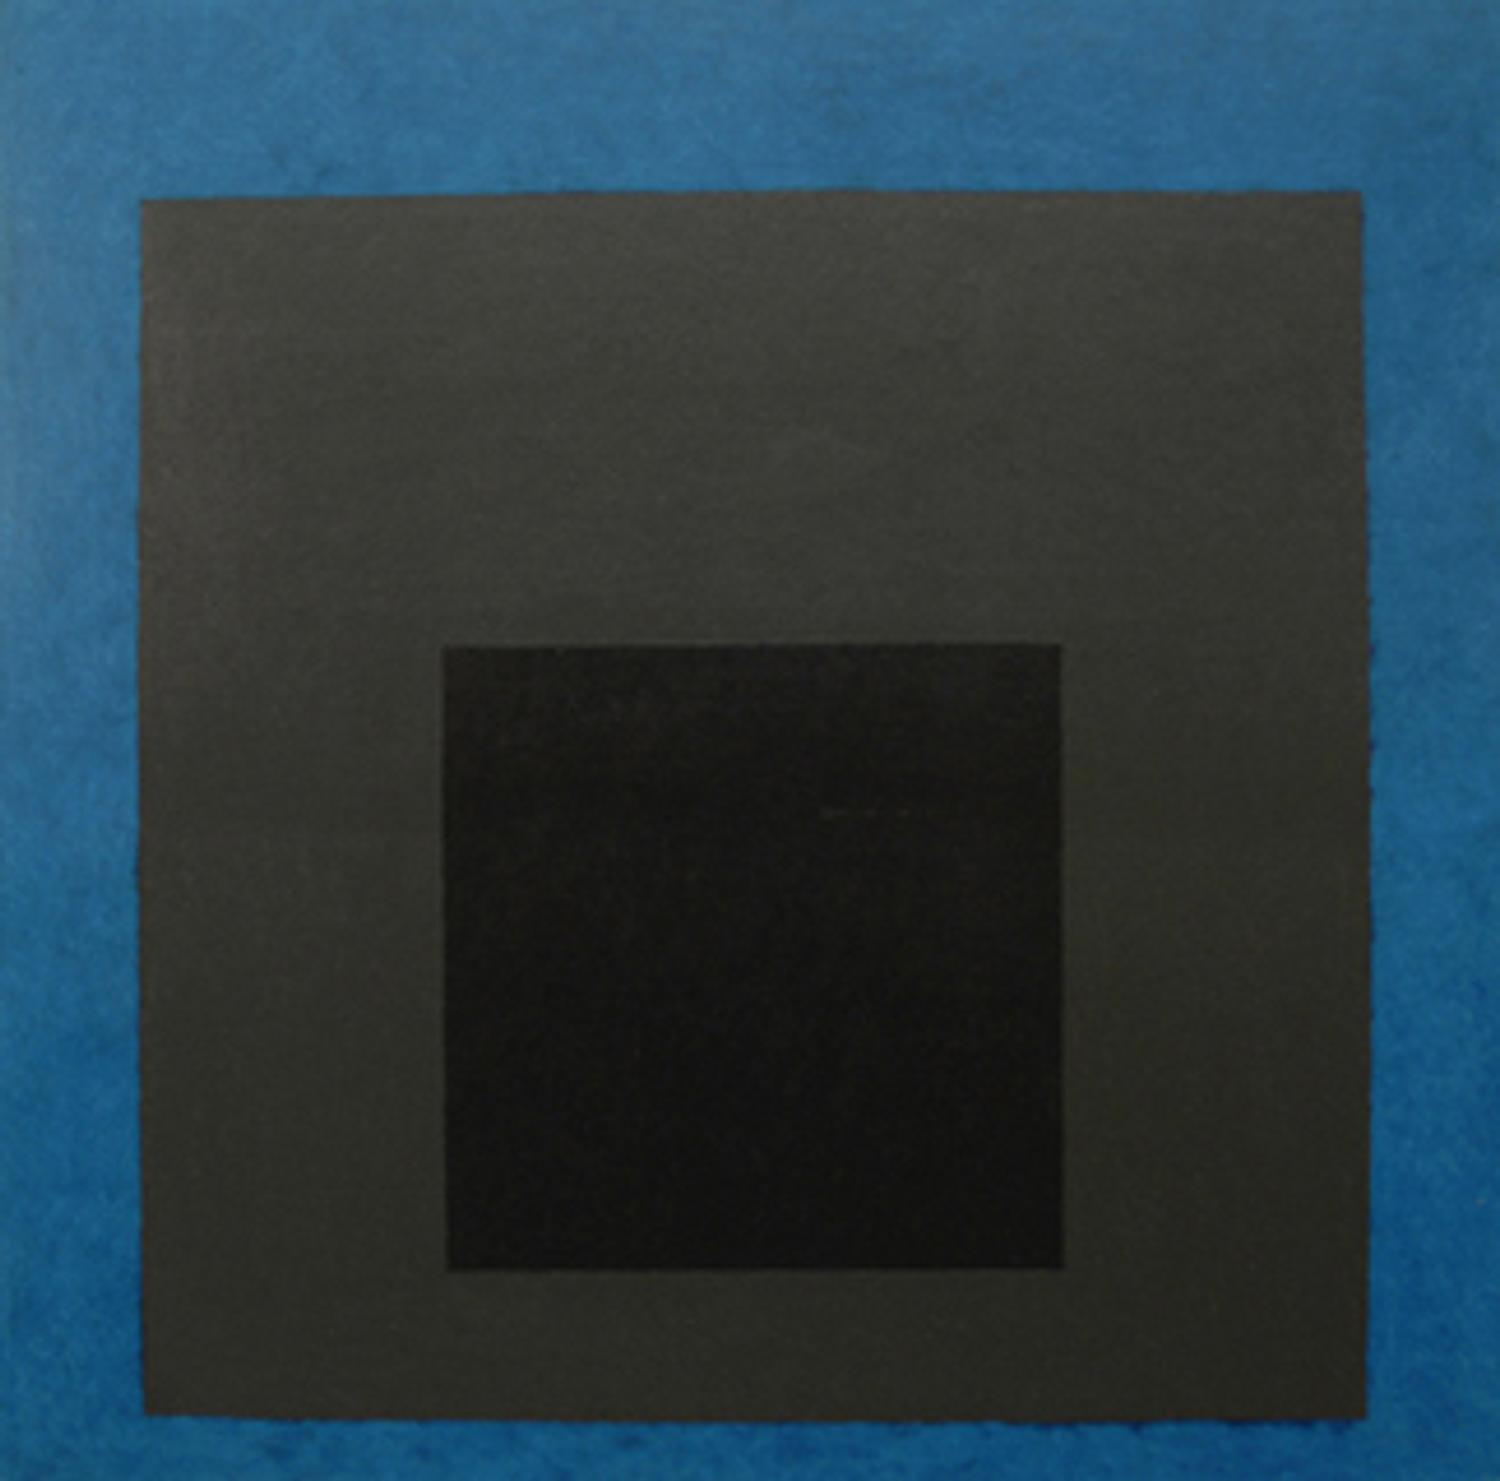 Josef Albers Mapplethorpes To Lead Grogan Auction Artwire Press Release From Artfixdaily Com